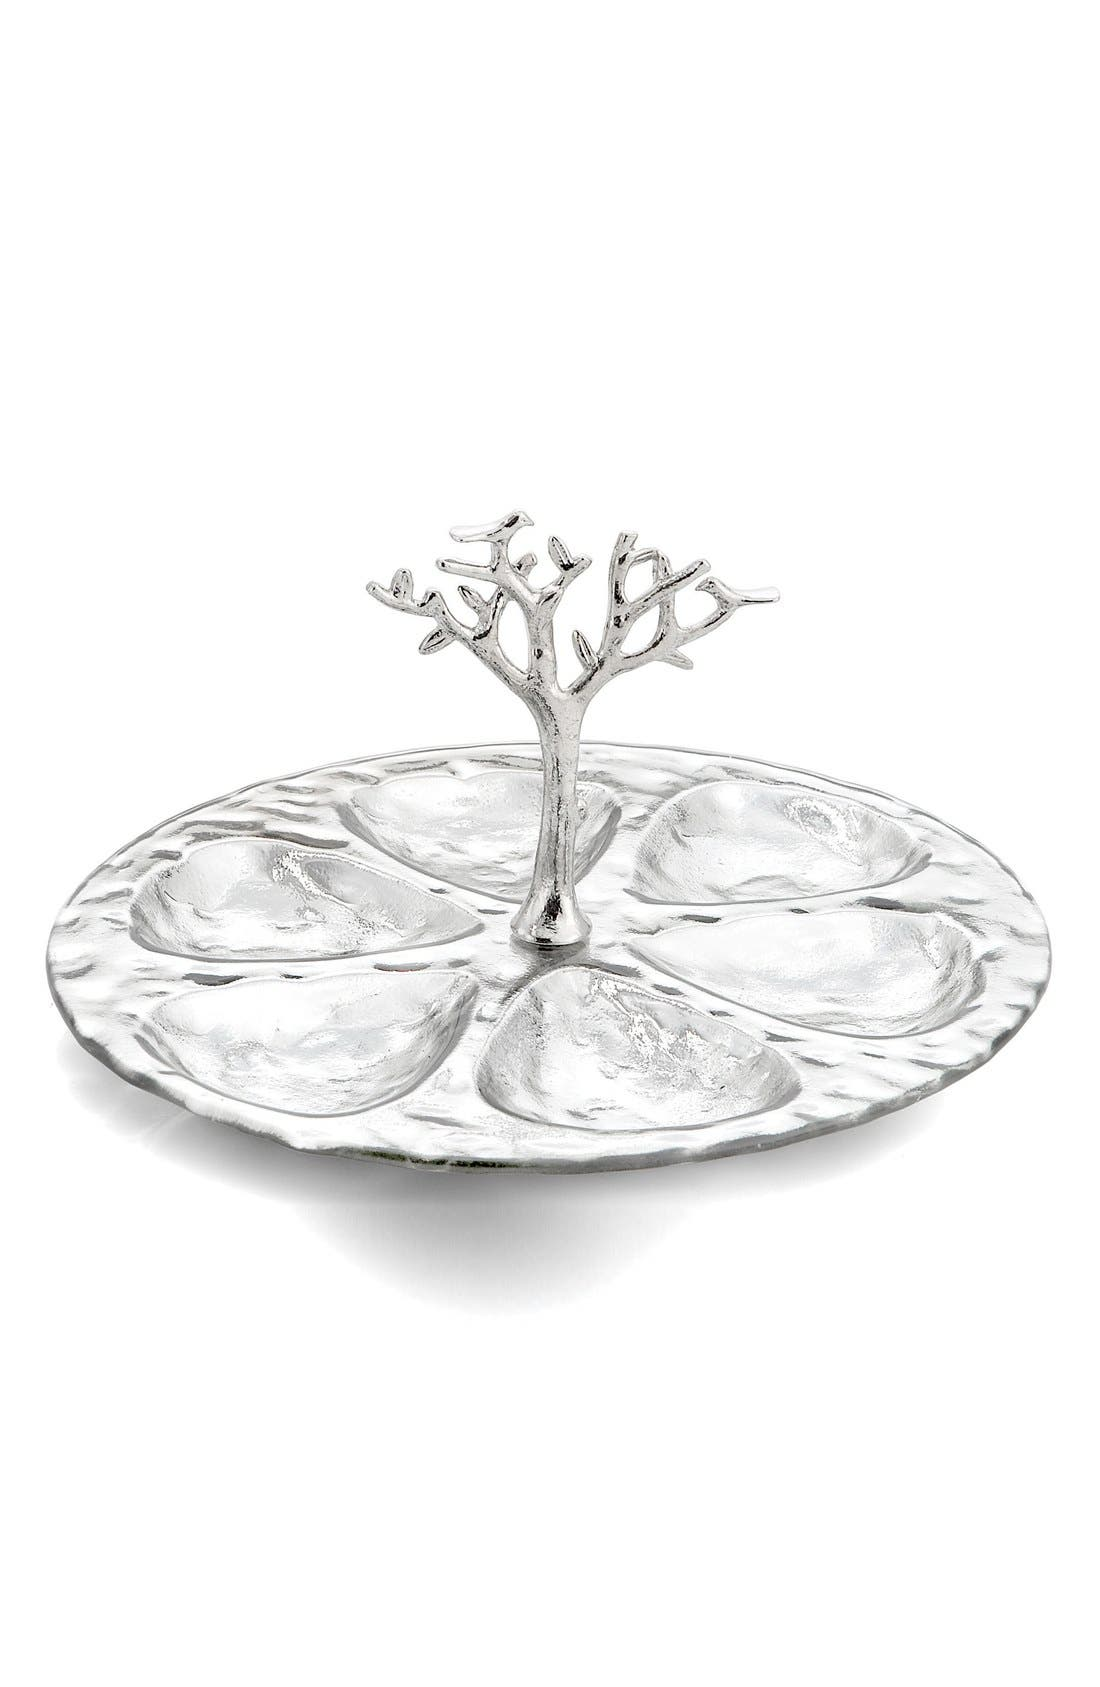 Michael Aram 'Tree of Life' Seder Plate